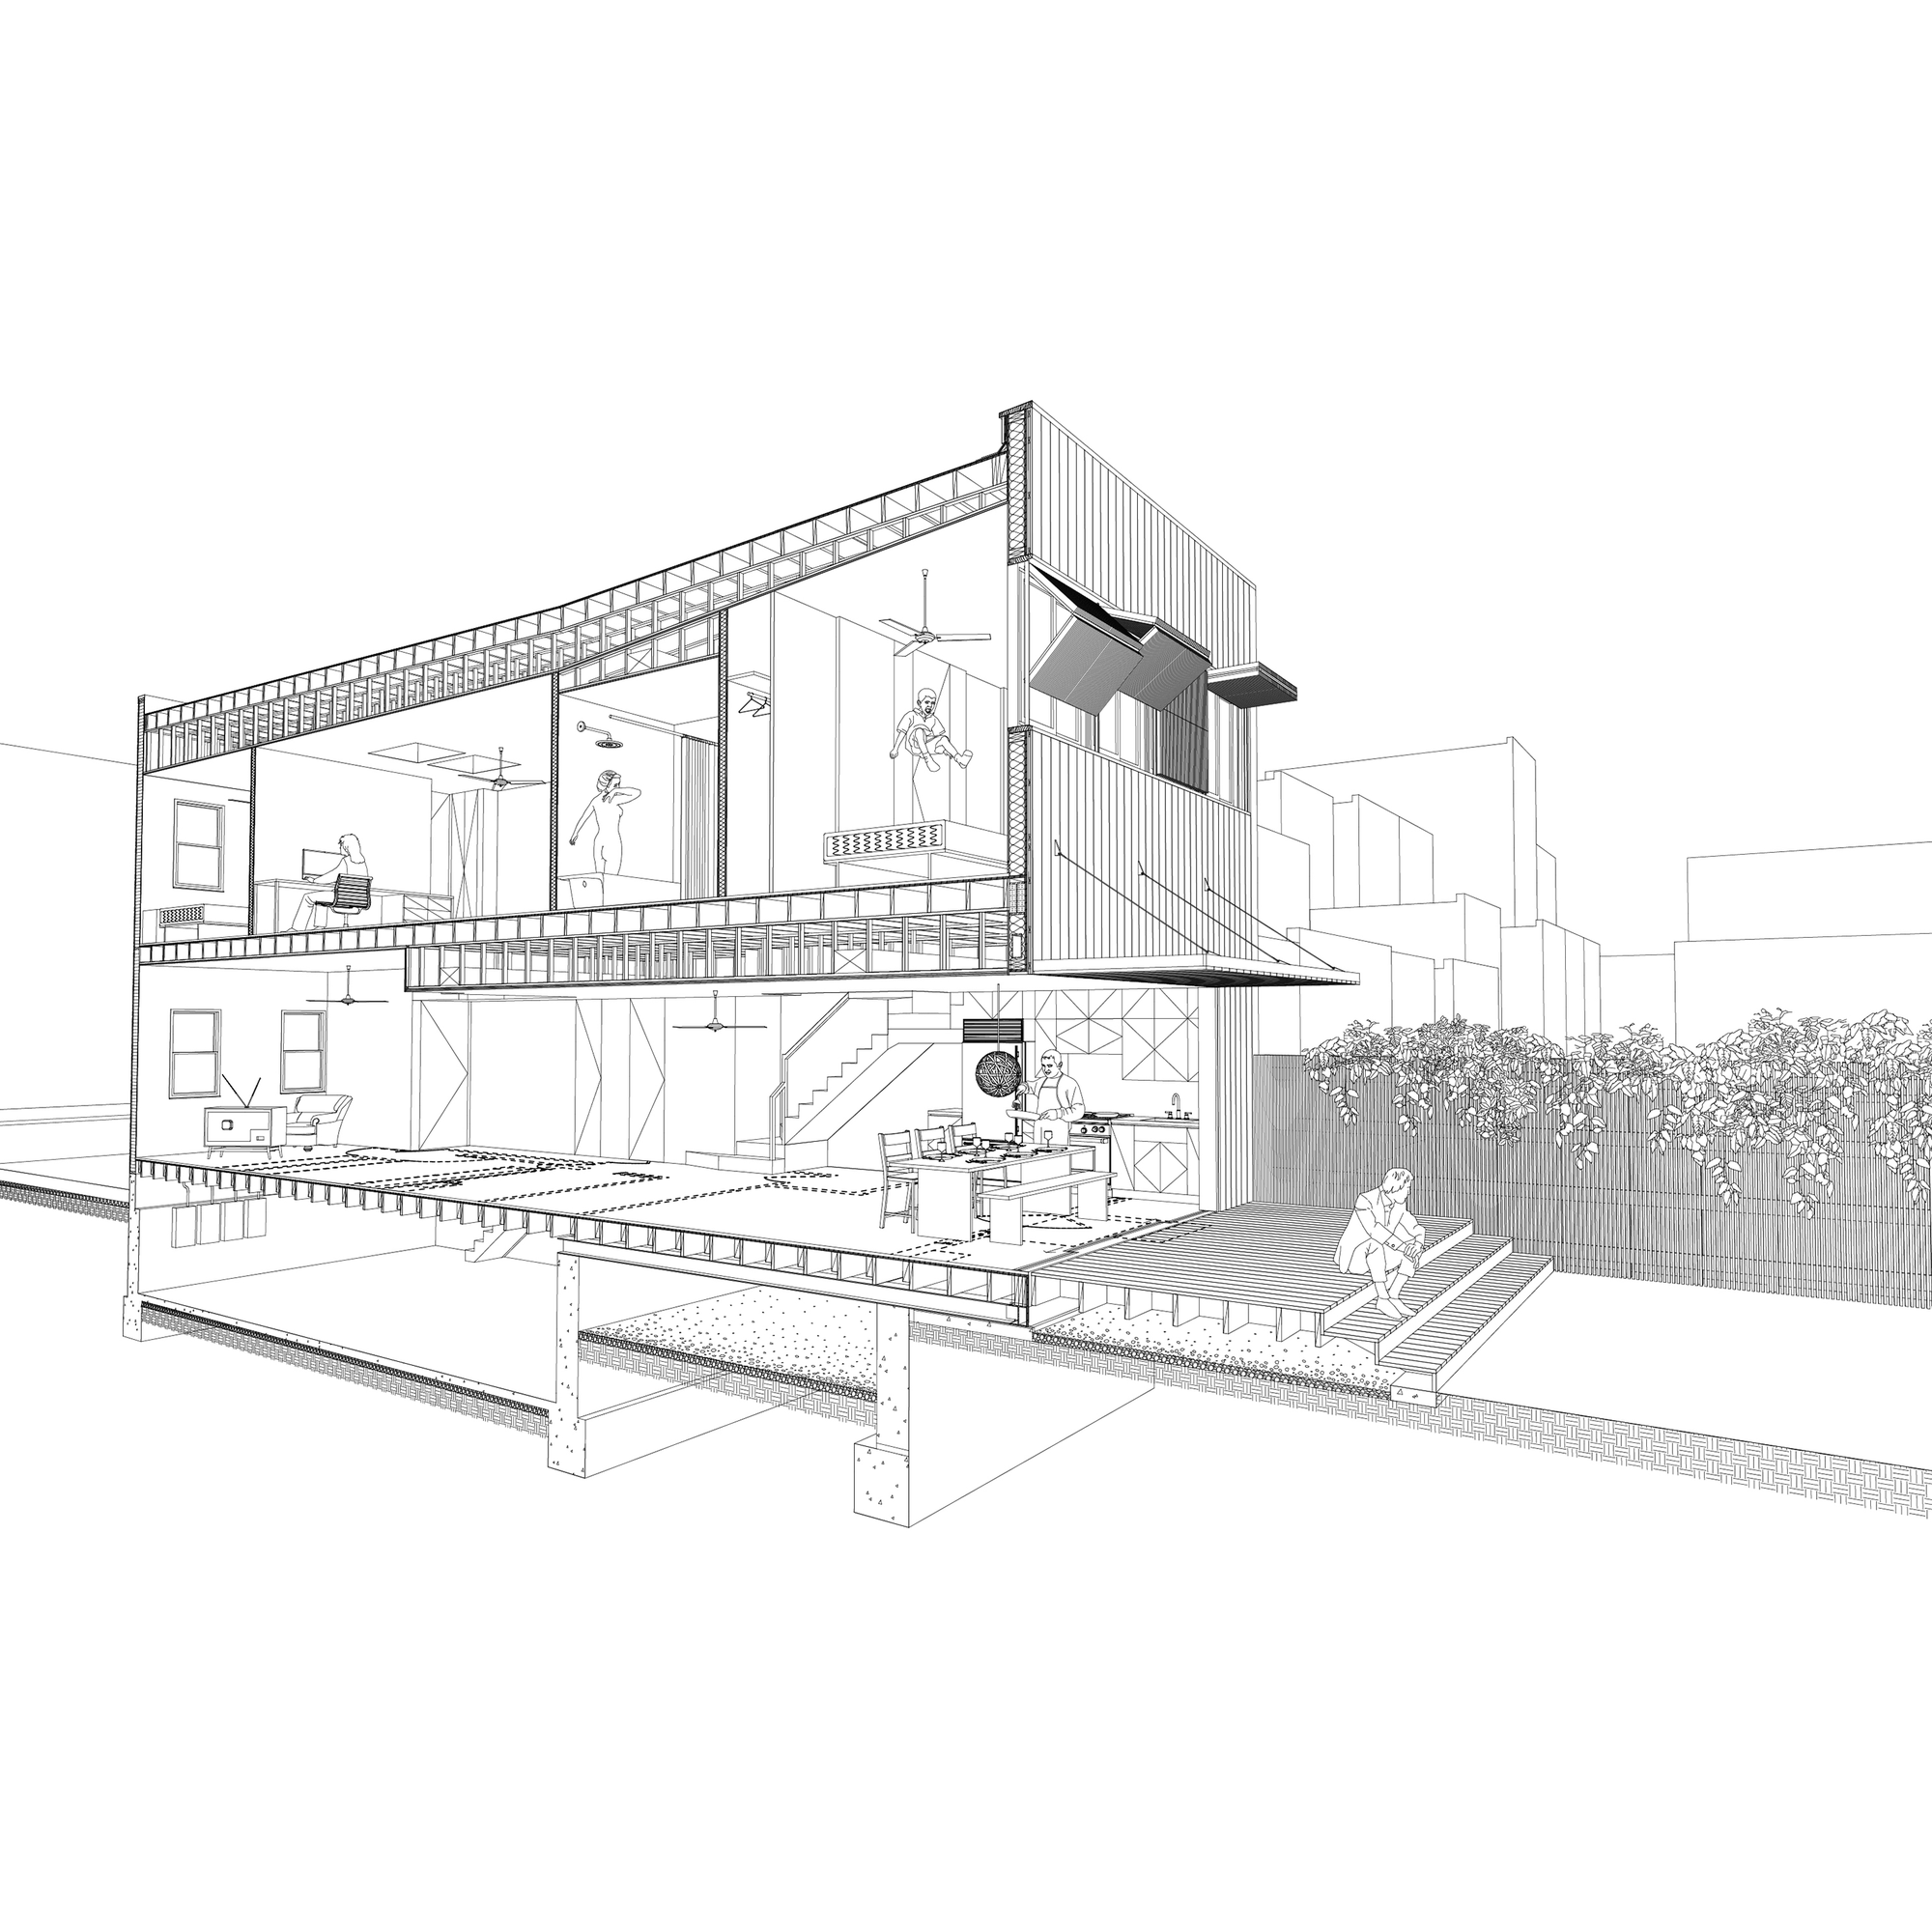 54f797f8e58ecee84d0001c8_brooklyn-row-house-office-of-architecture_section